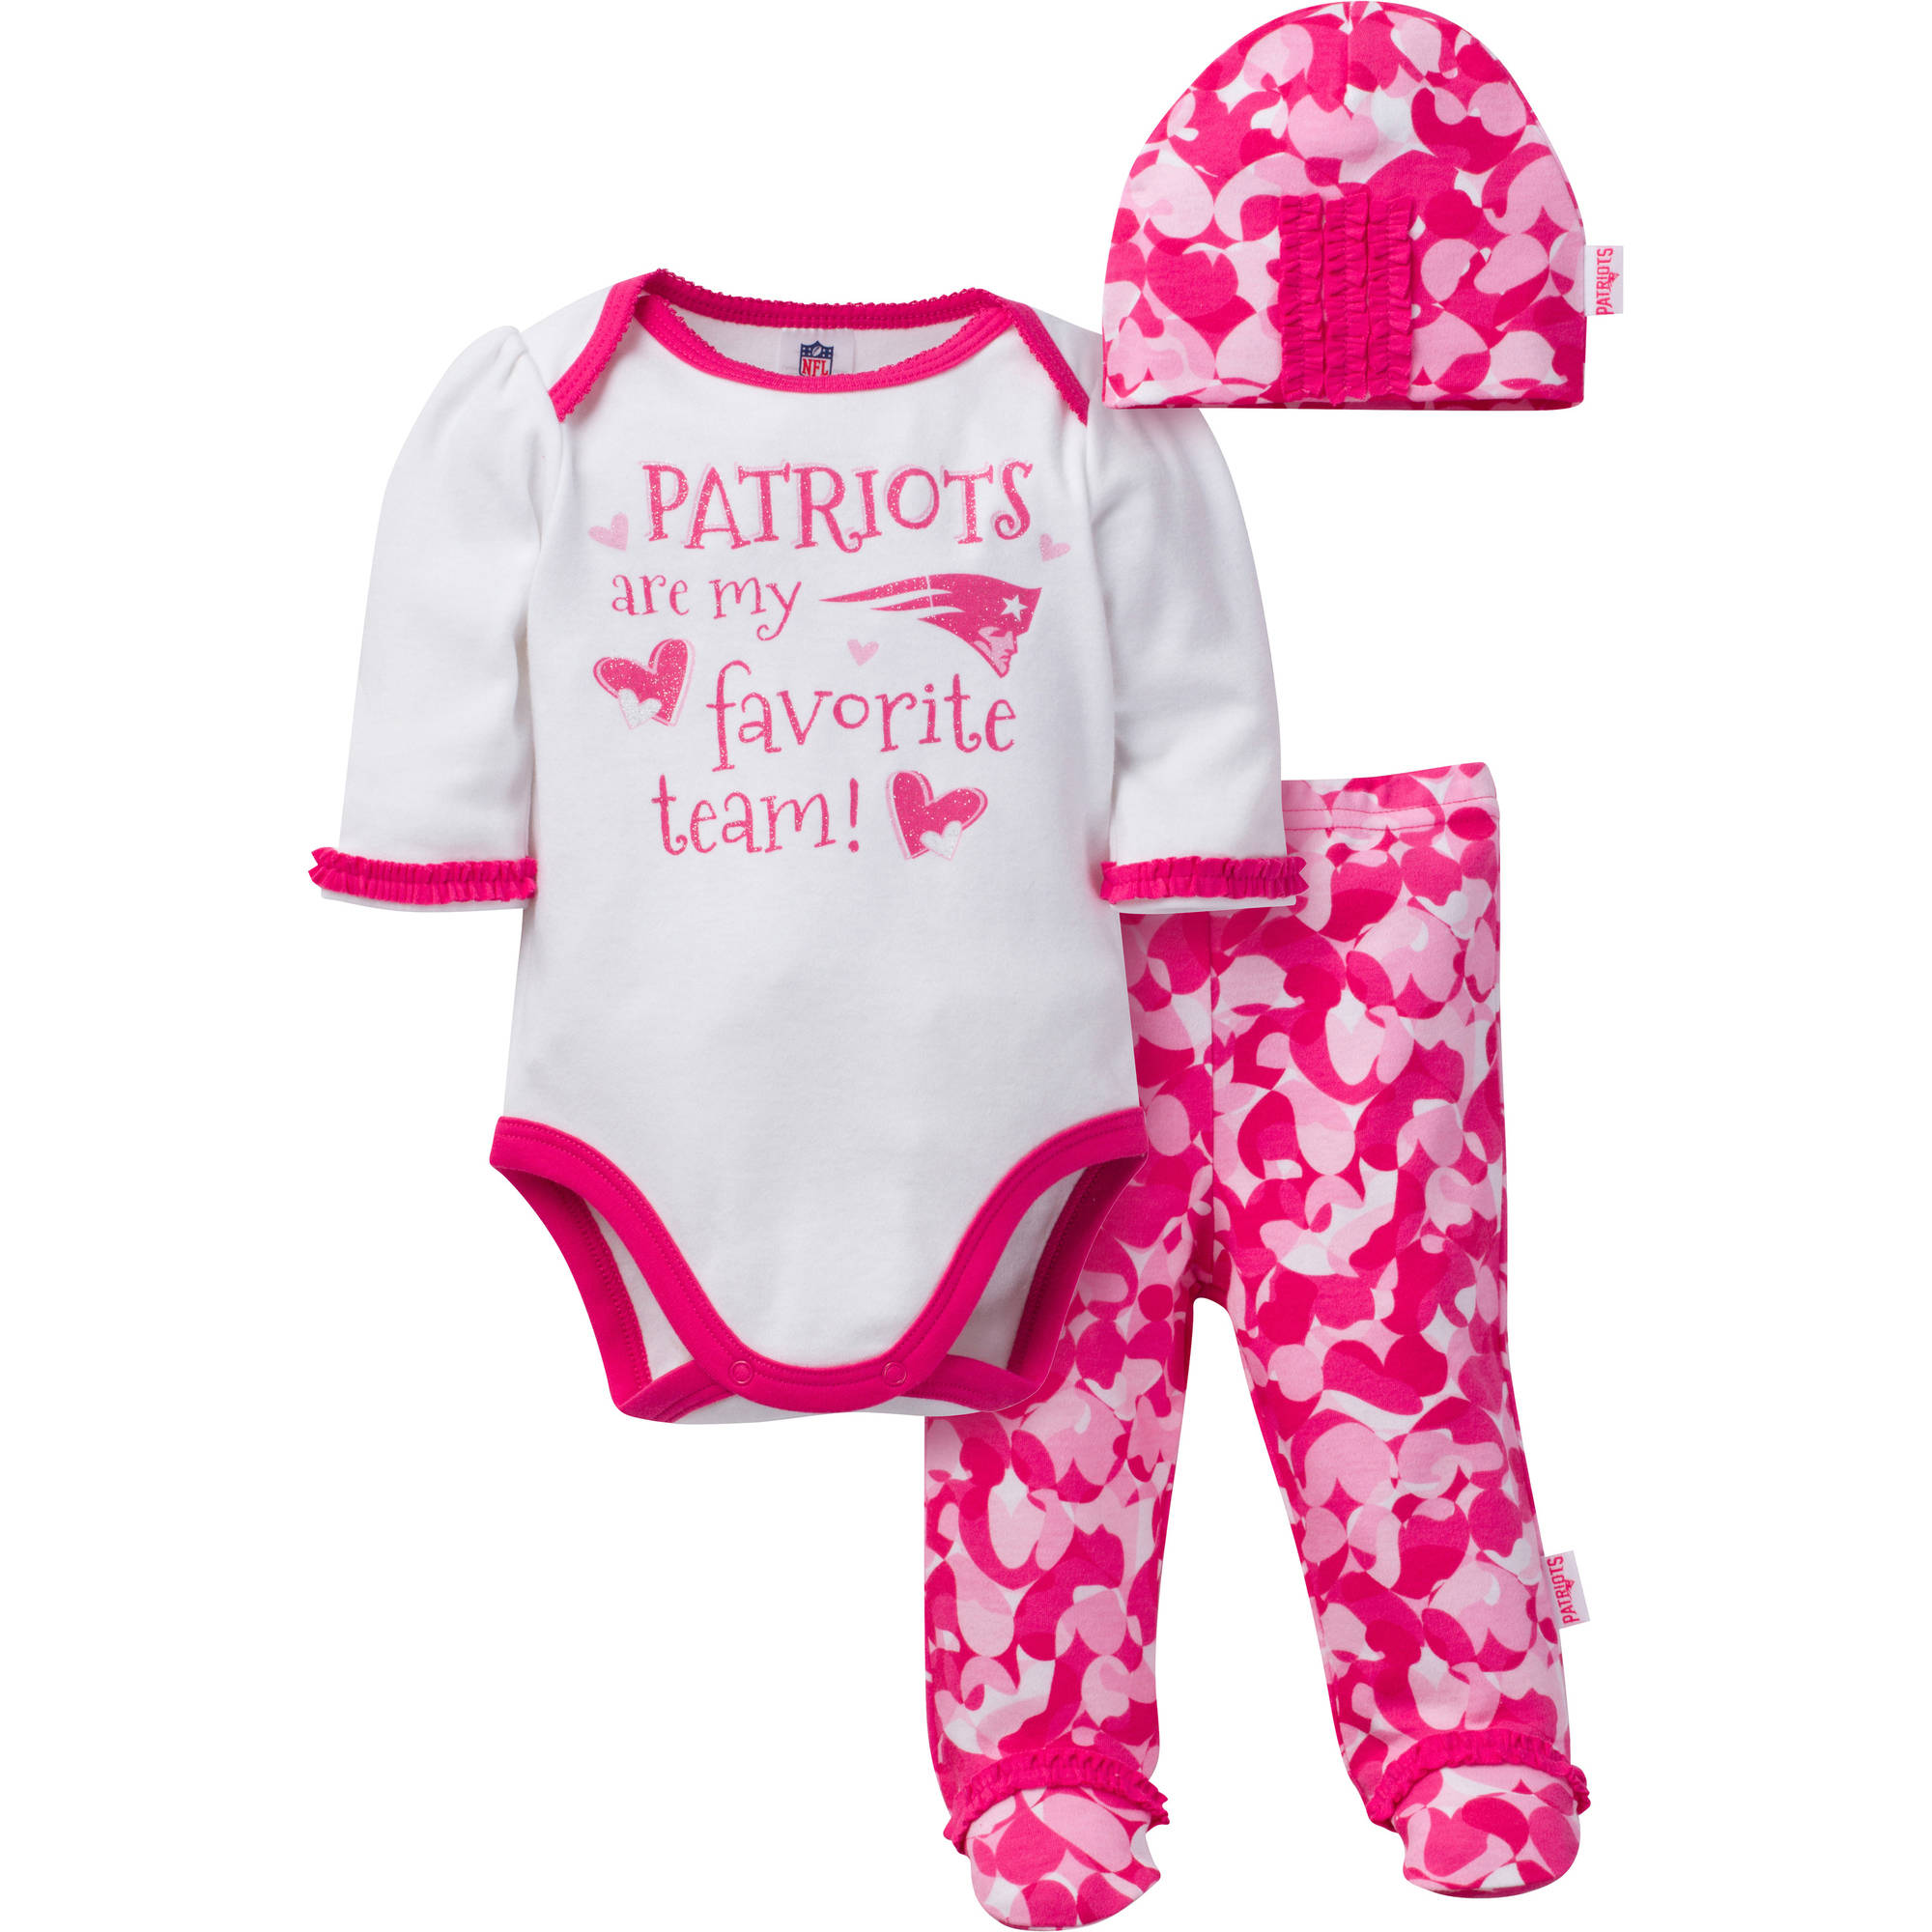 NFL New England Patriots Baby Girls Bodysuit, Pant and Cap Outfit Set, 3-Piece